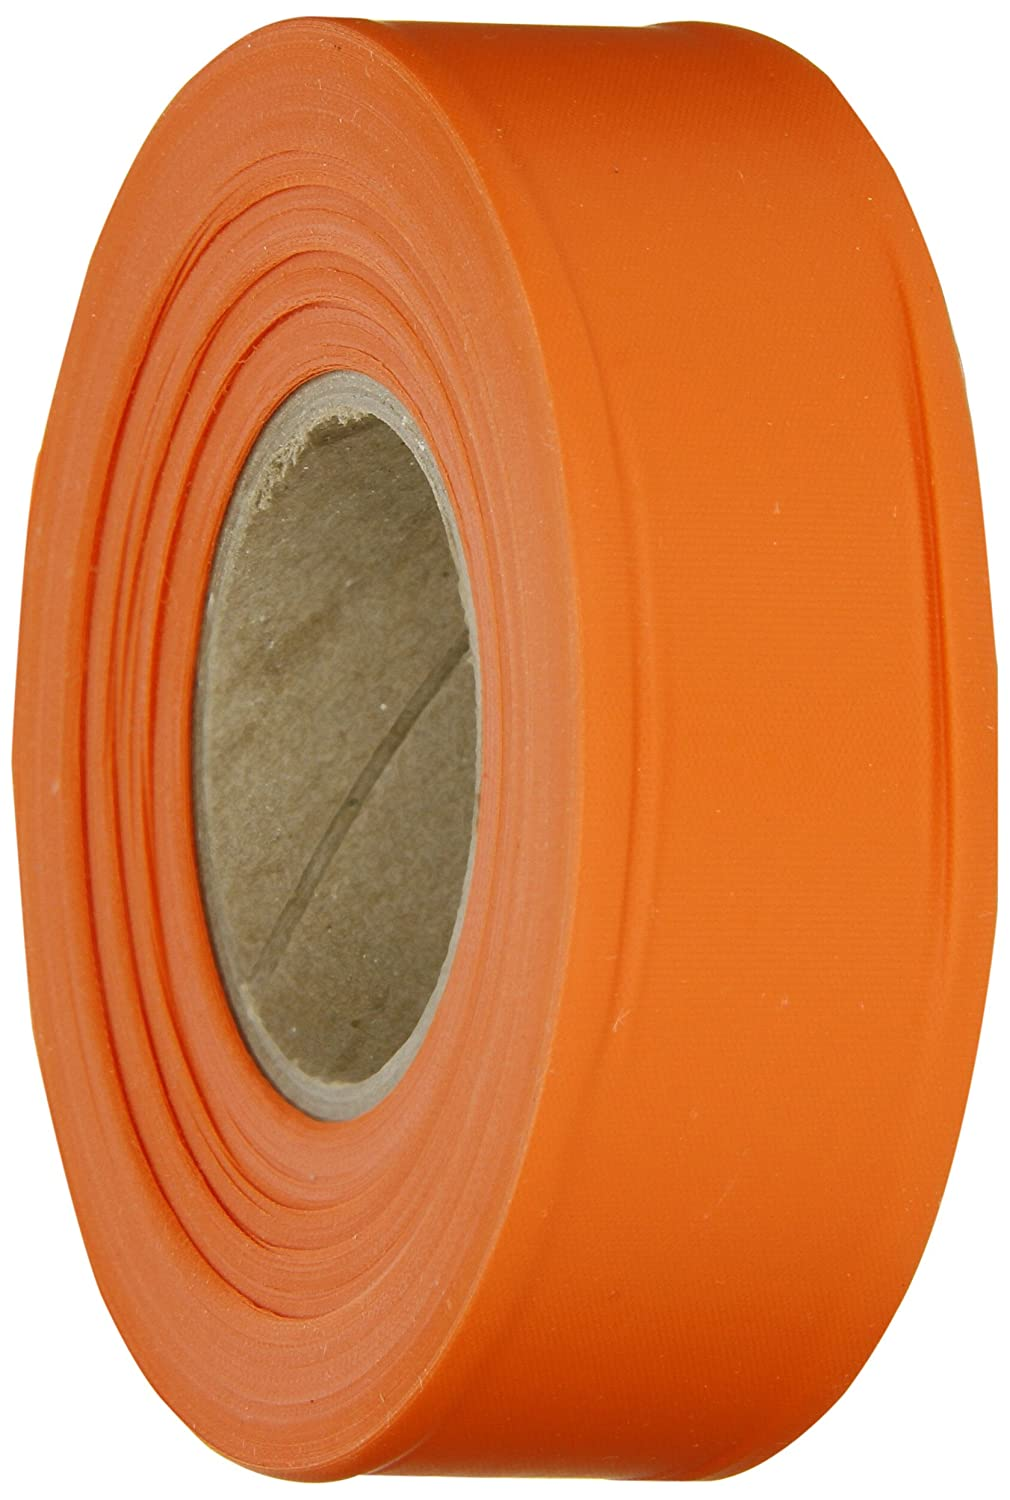 """Brady Orange Flagging Tape for Boundaries and Hazardous Areas - Non-Adhesive Tape, 1.188"""" Width, 300' Length (Pack of 1) - 58344"""